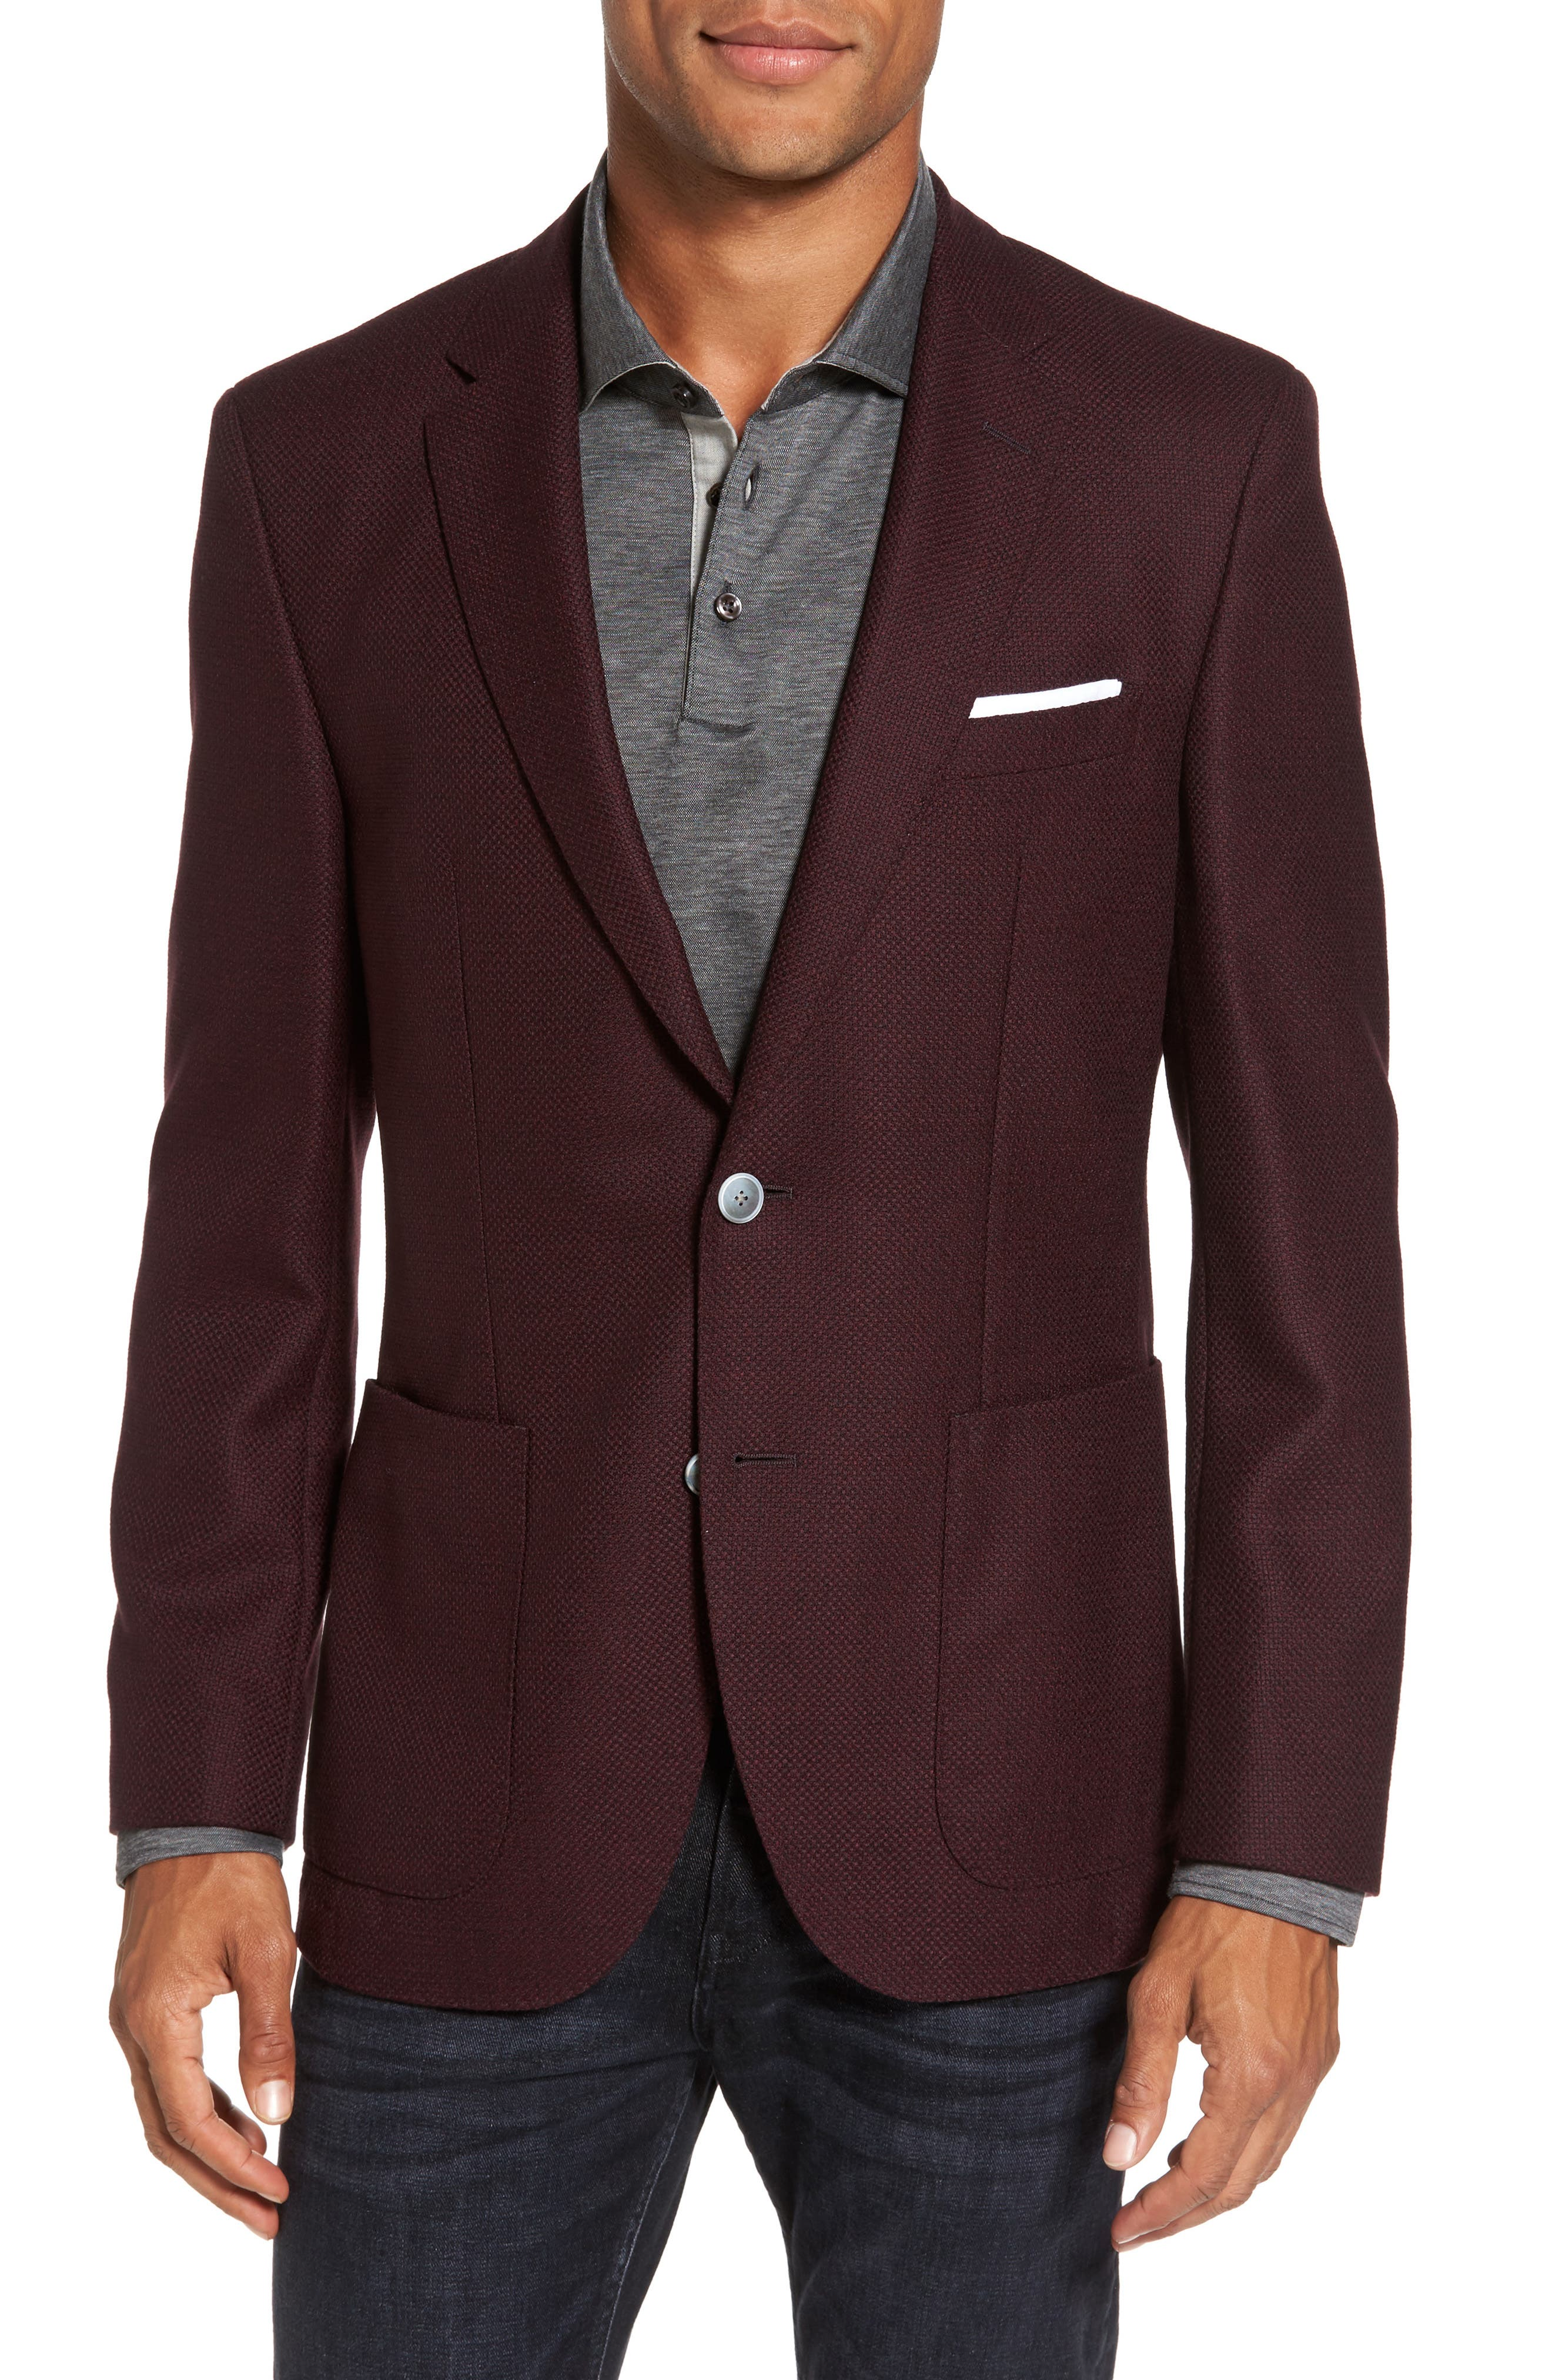 Janson Trim Fit Wool Blazer,                             Main thumbnail 1, color,                             606